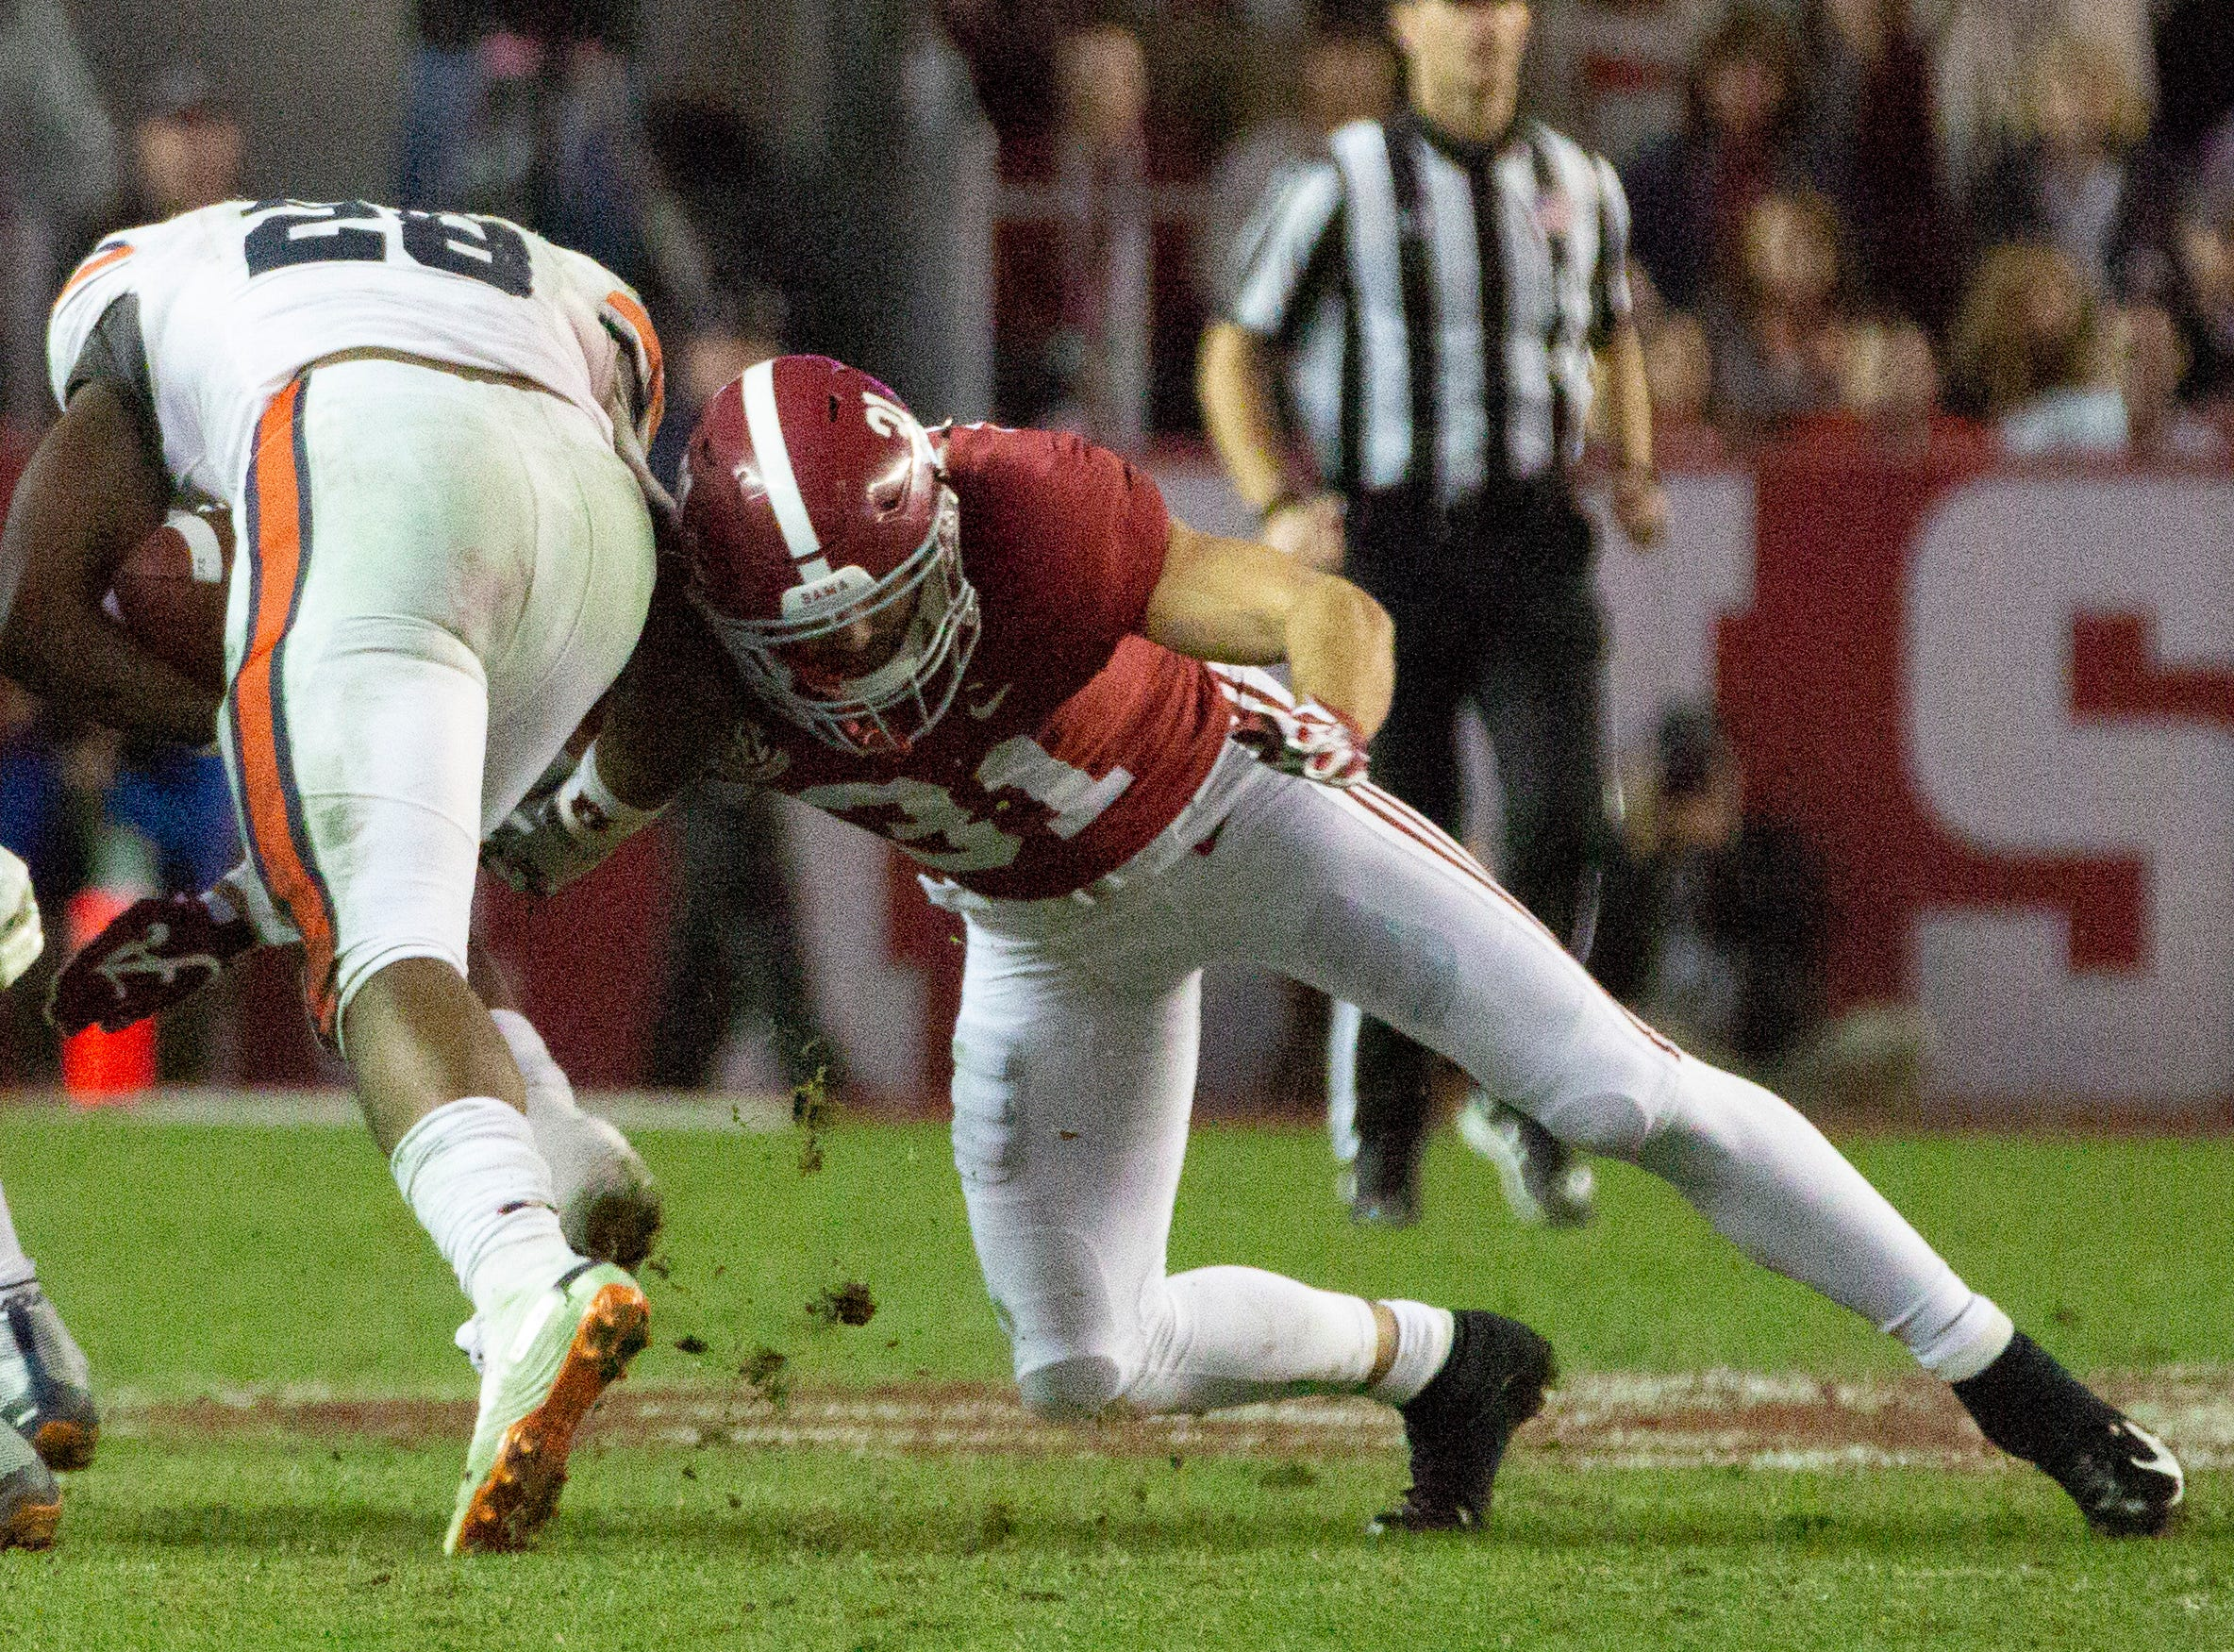 Auburn's JaTarvious Whitlow ducks down as Alabama's Keaton Anderson goes in for the tackle.